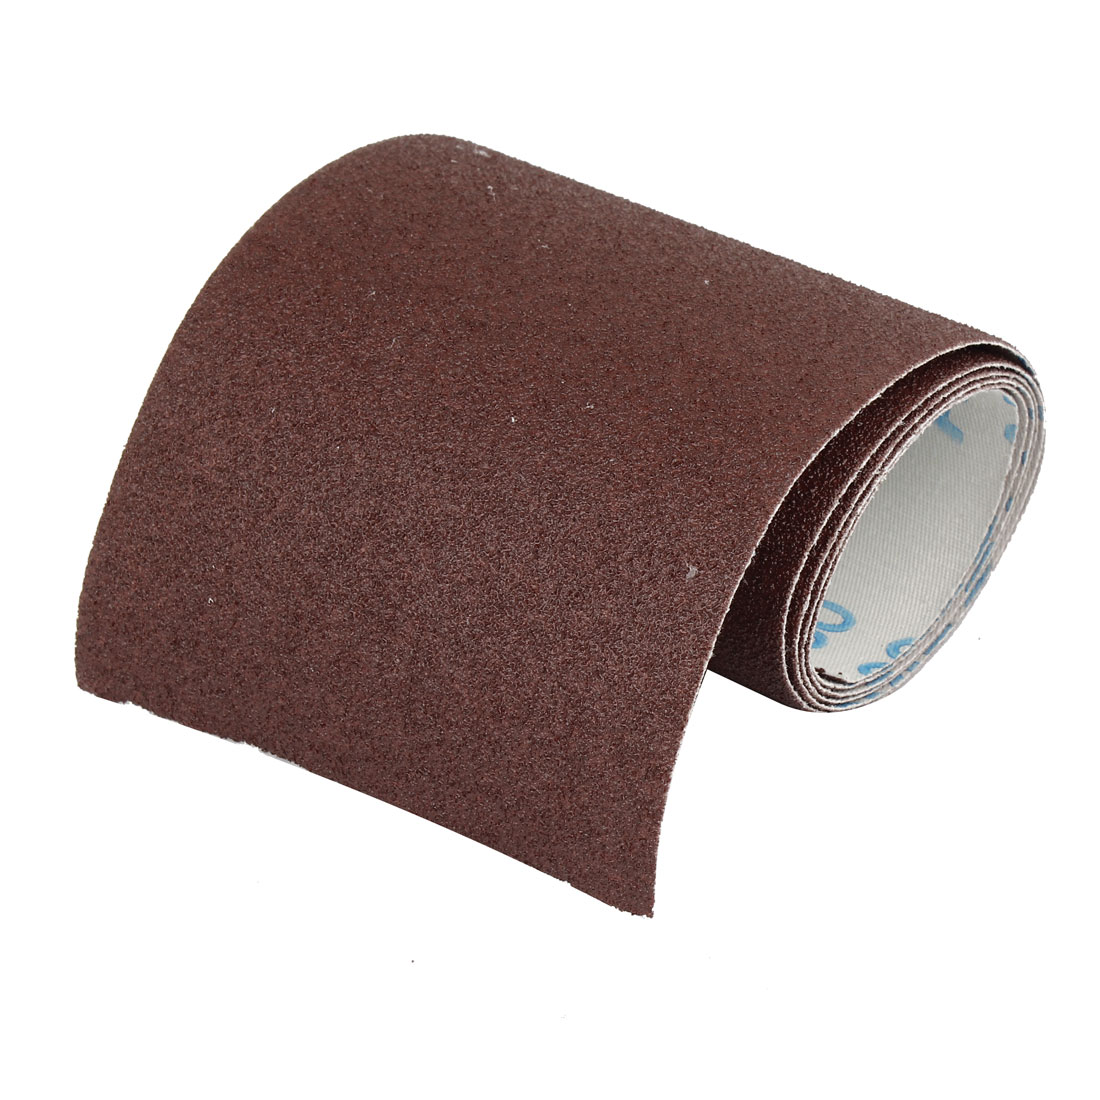 100cm x 10cm 80 Grit Abrasive Sheet Sanding Sandpaper Buffing Tool Dark Brown